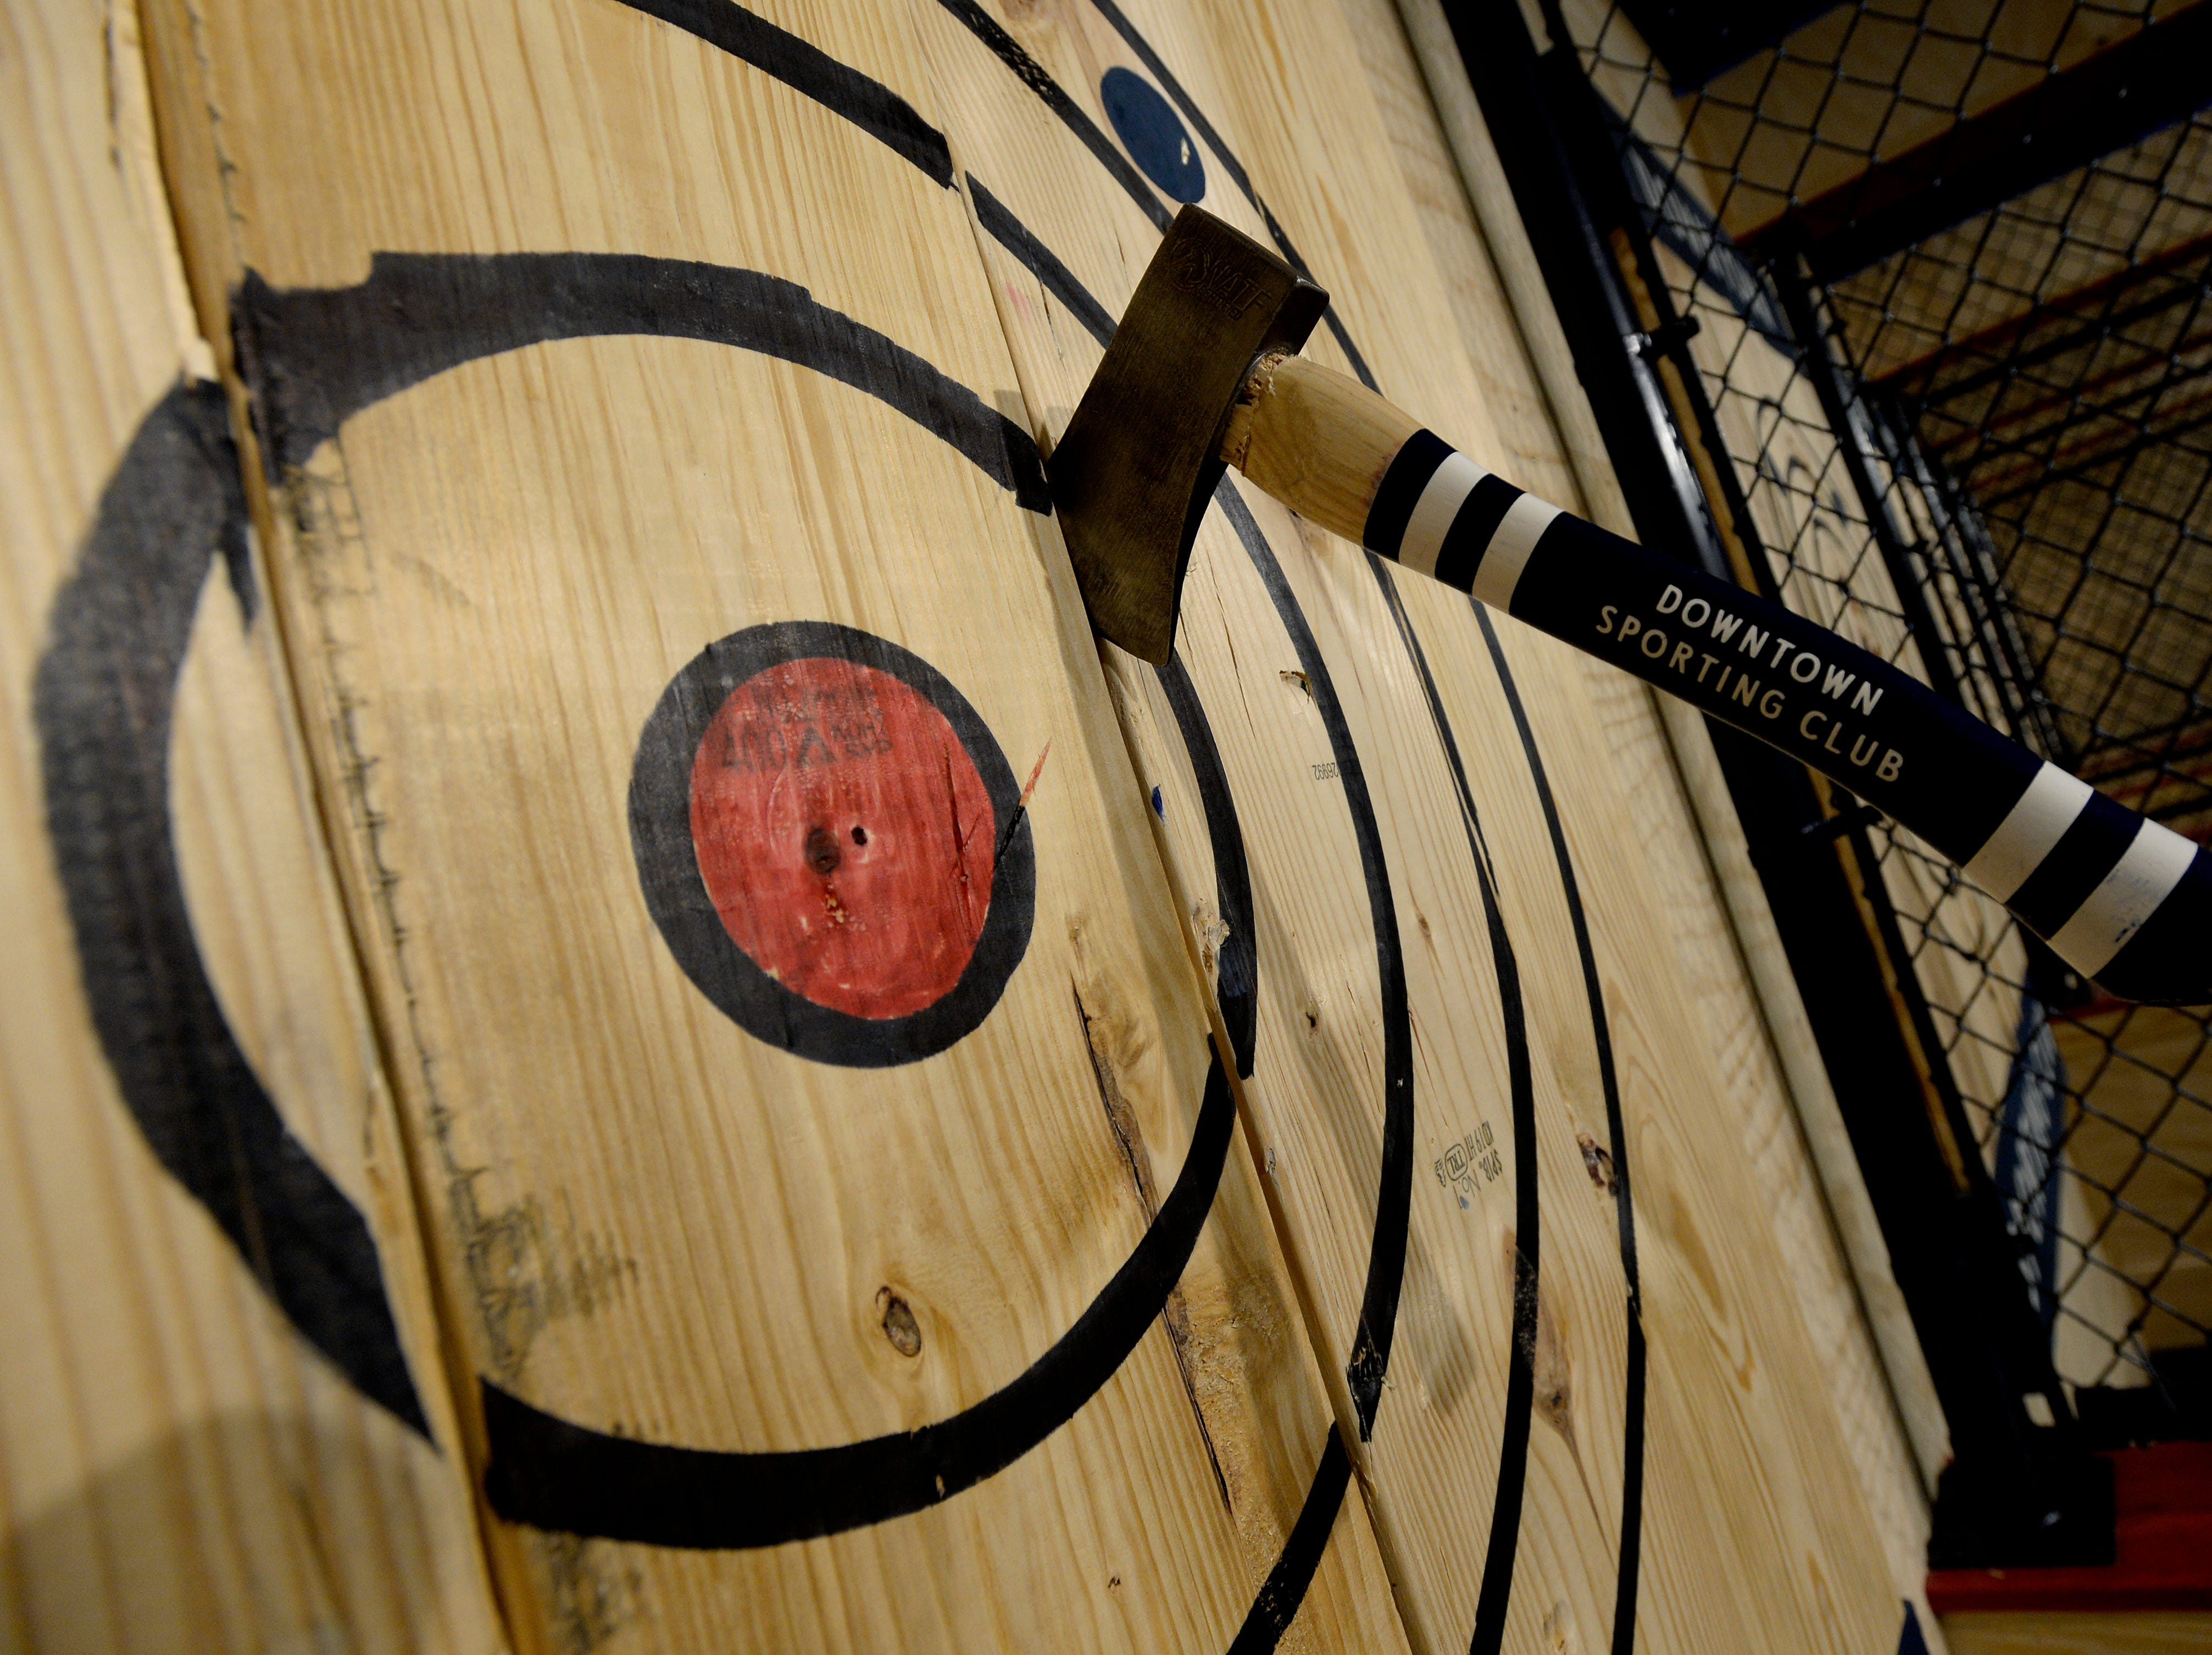 The ax-throwing area will be available for customers at the new Downtown Sporting Club on Monday, April 22, 2019 in Nashville, Tenn. The massive Downtown Sporting Club is on Lower Broadway and opening this week before the NFL Draft. It will include a restaurant, coffee shop, boutique lodging and an ax-throwing area.